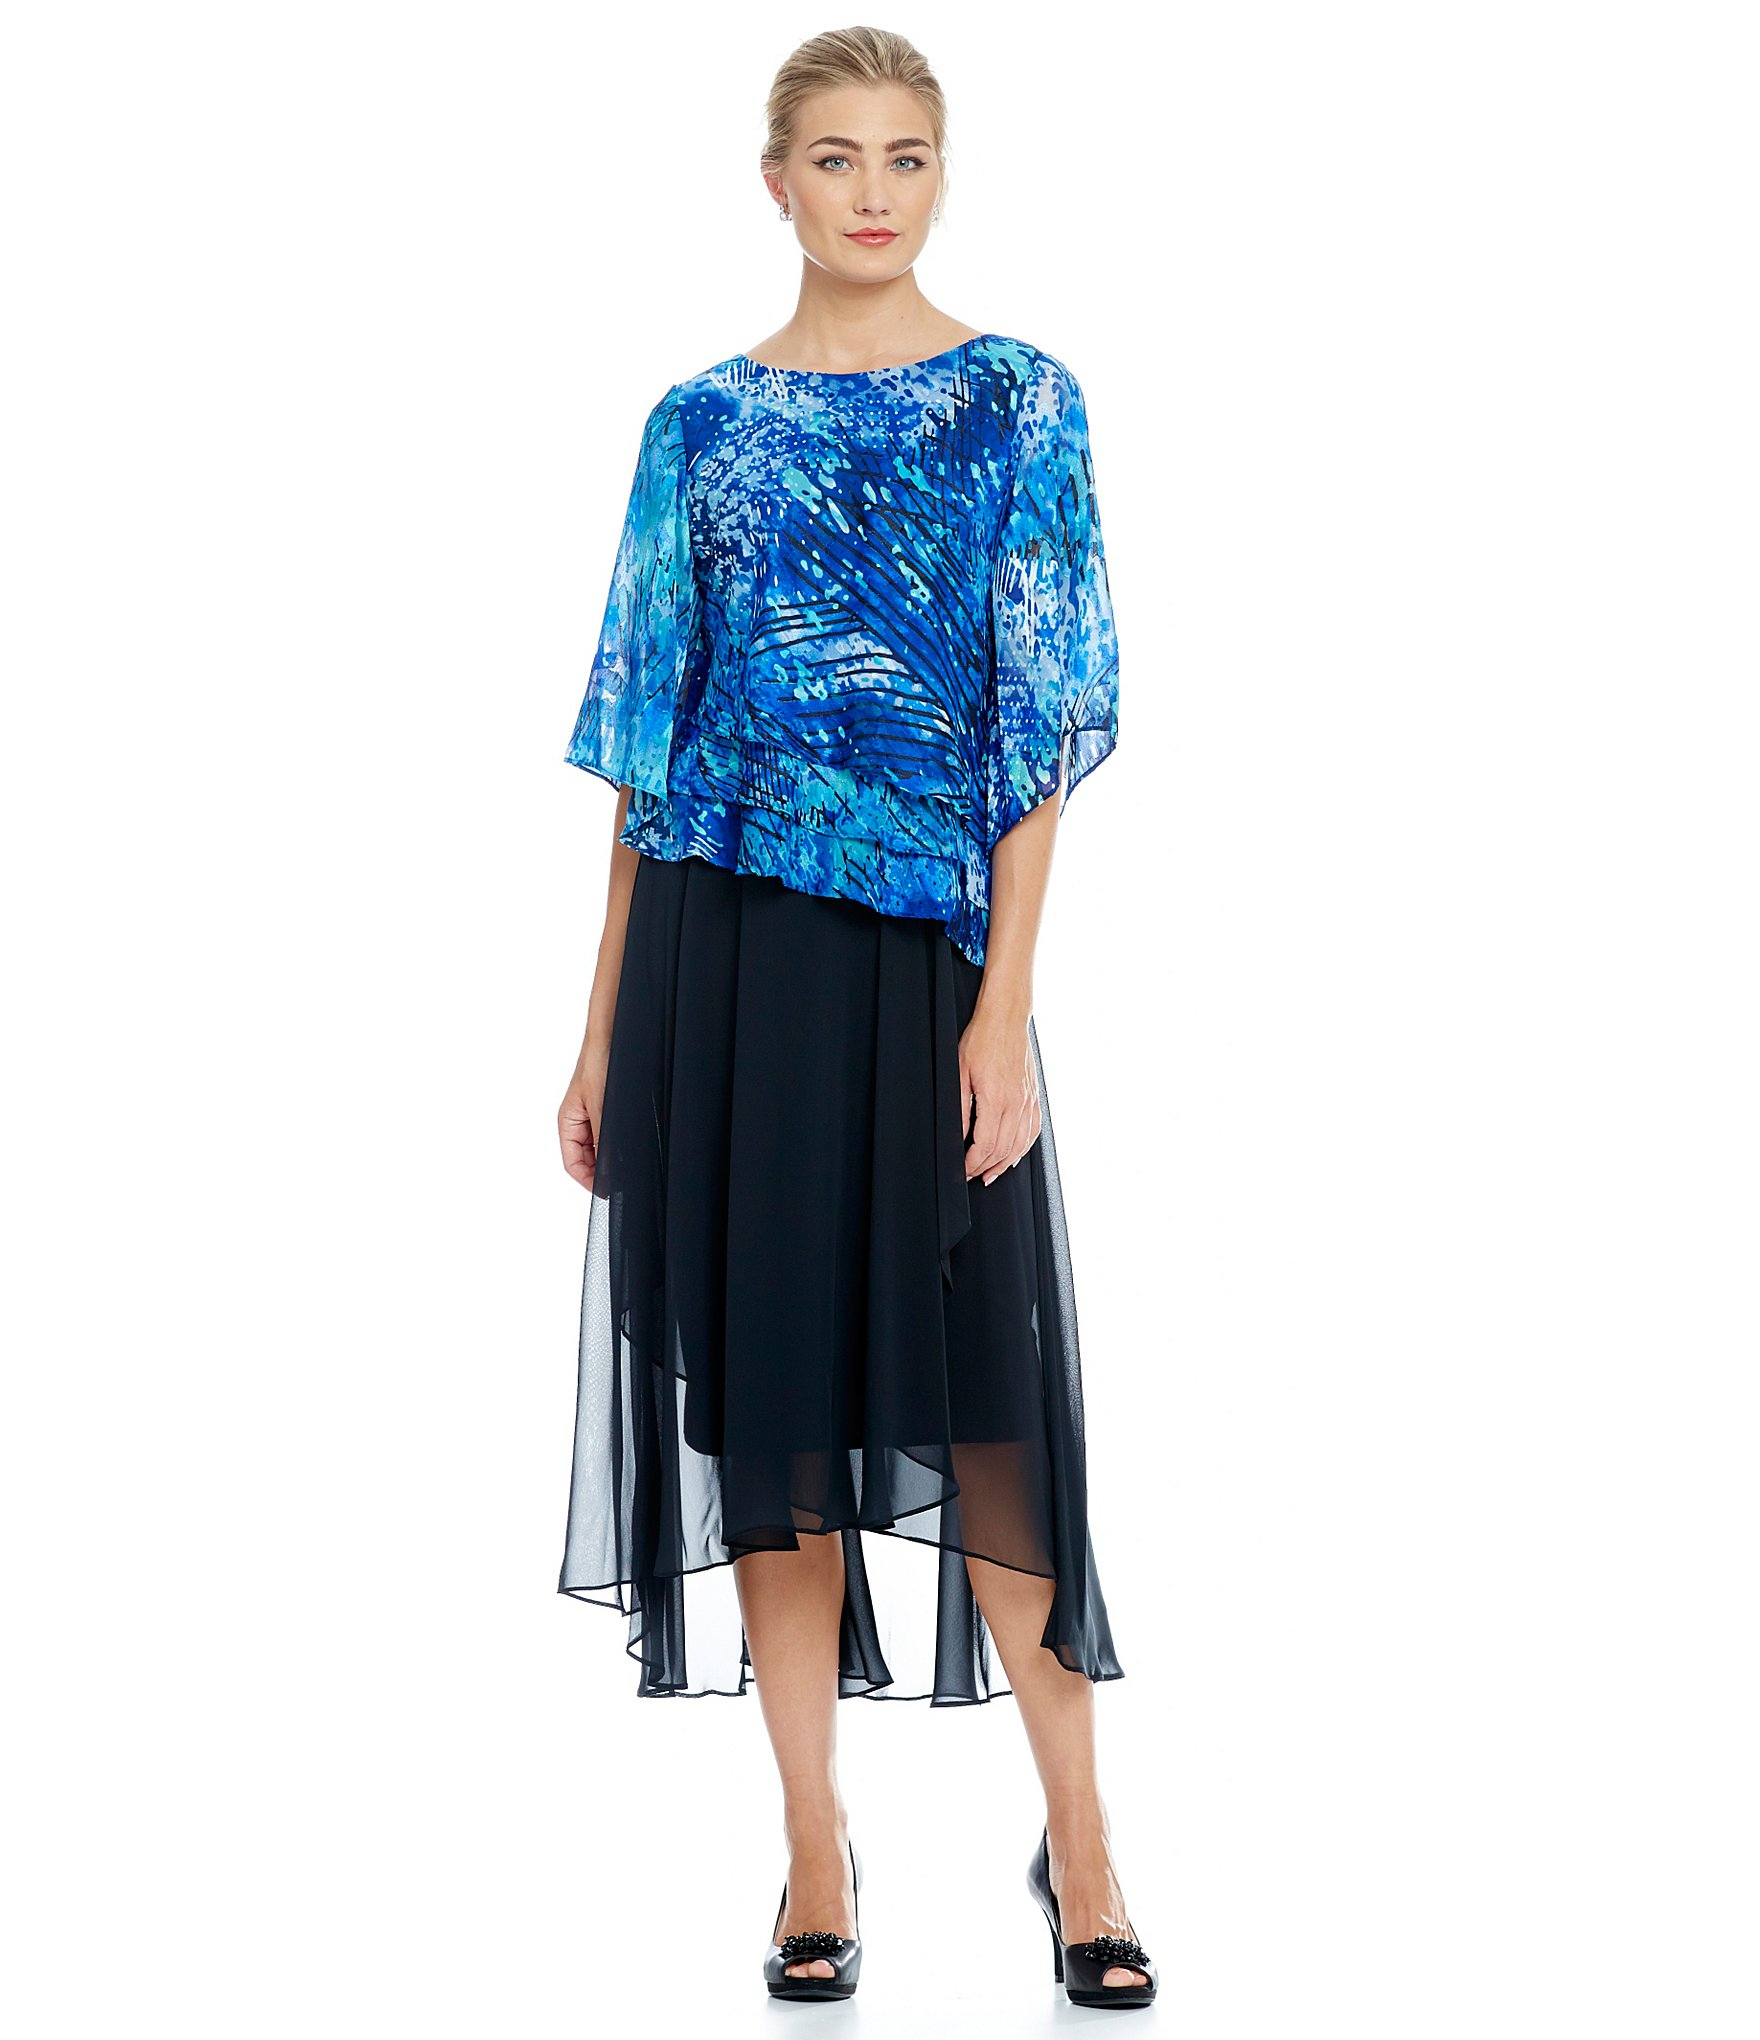 Alex evenings Printed Tiered Blouse in Blue